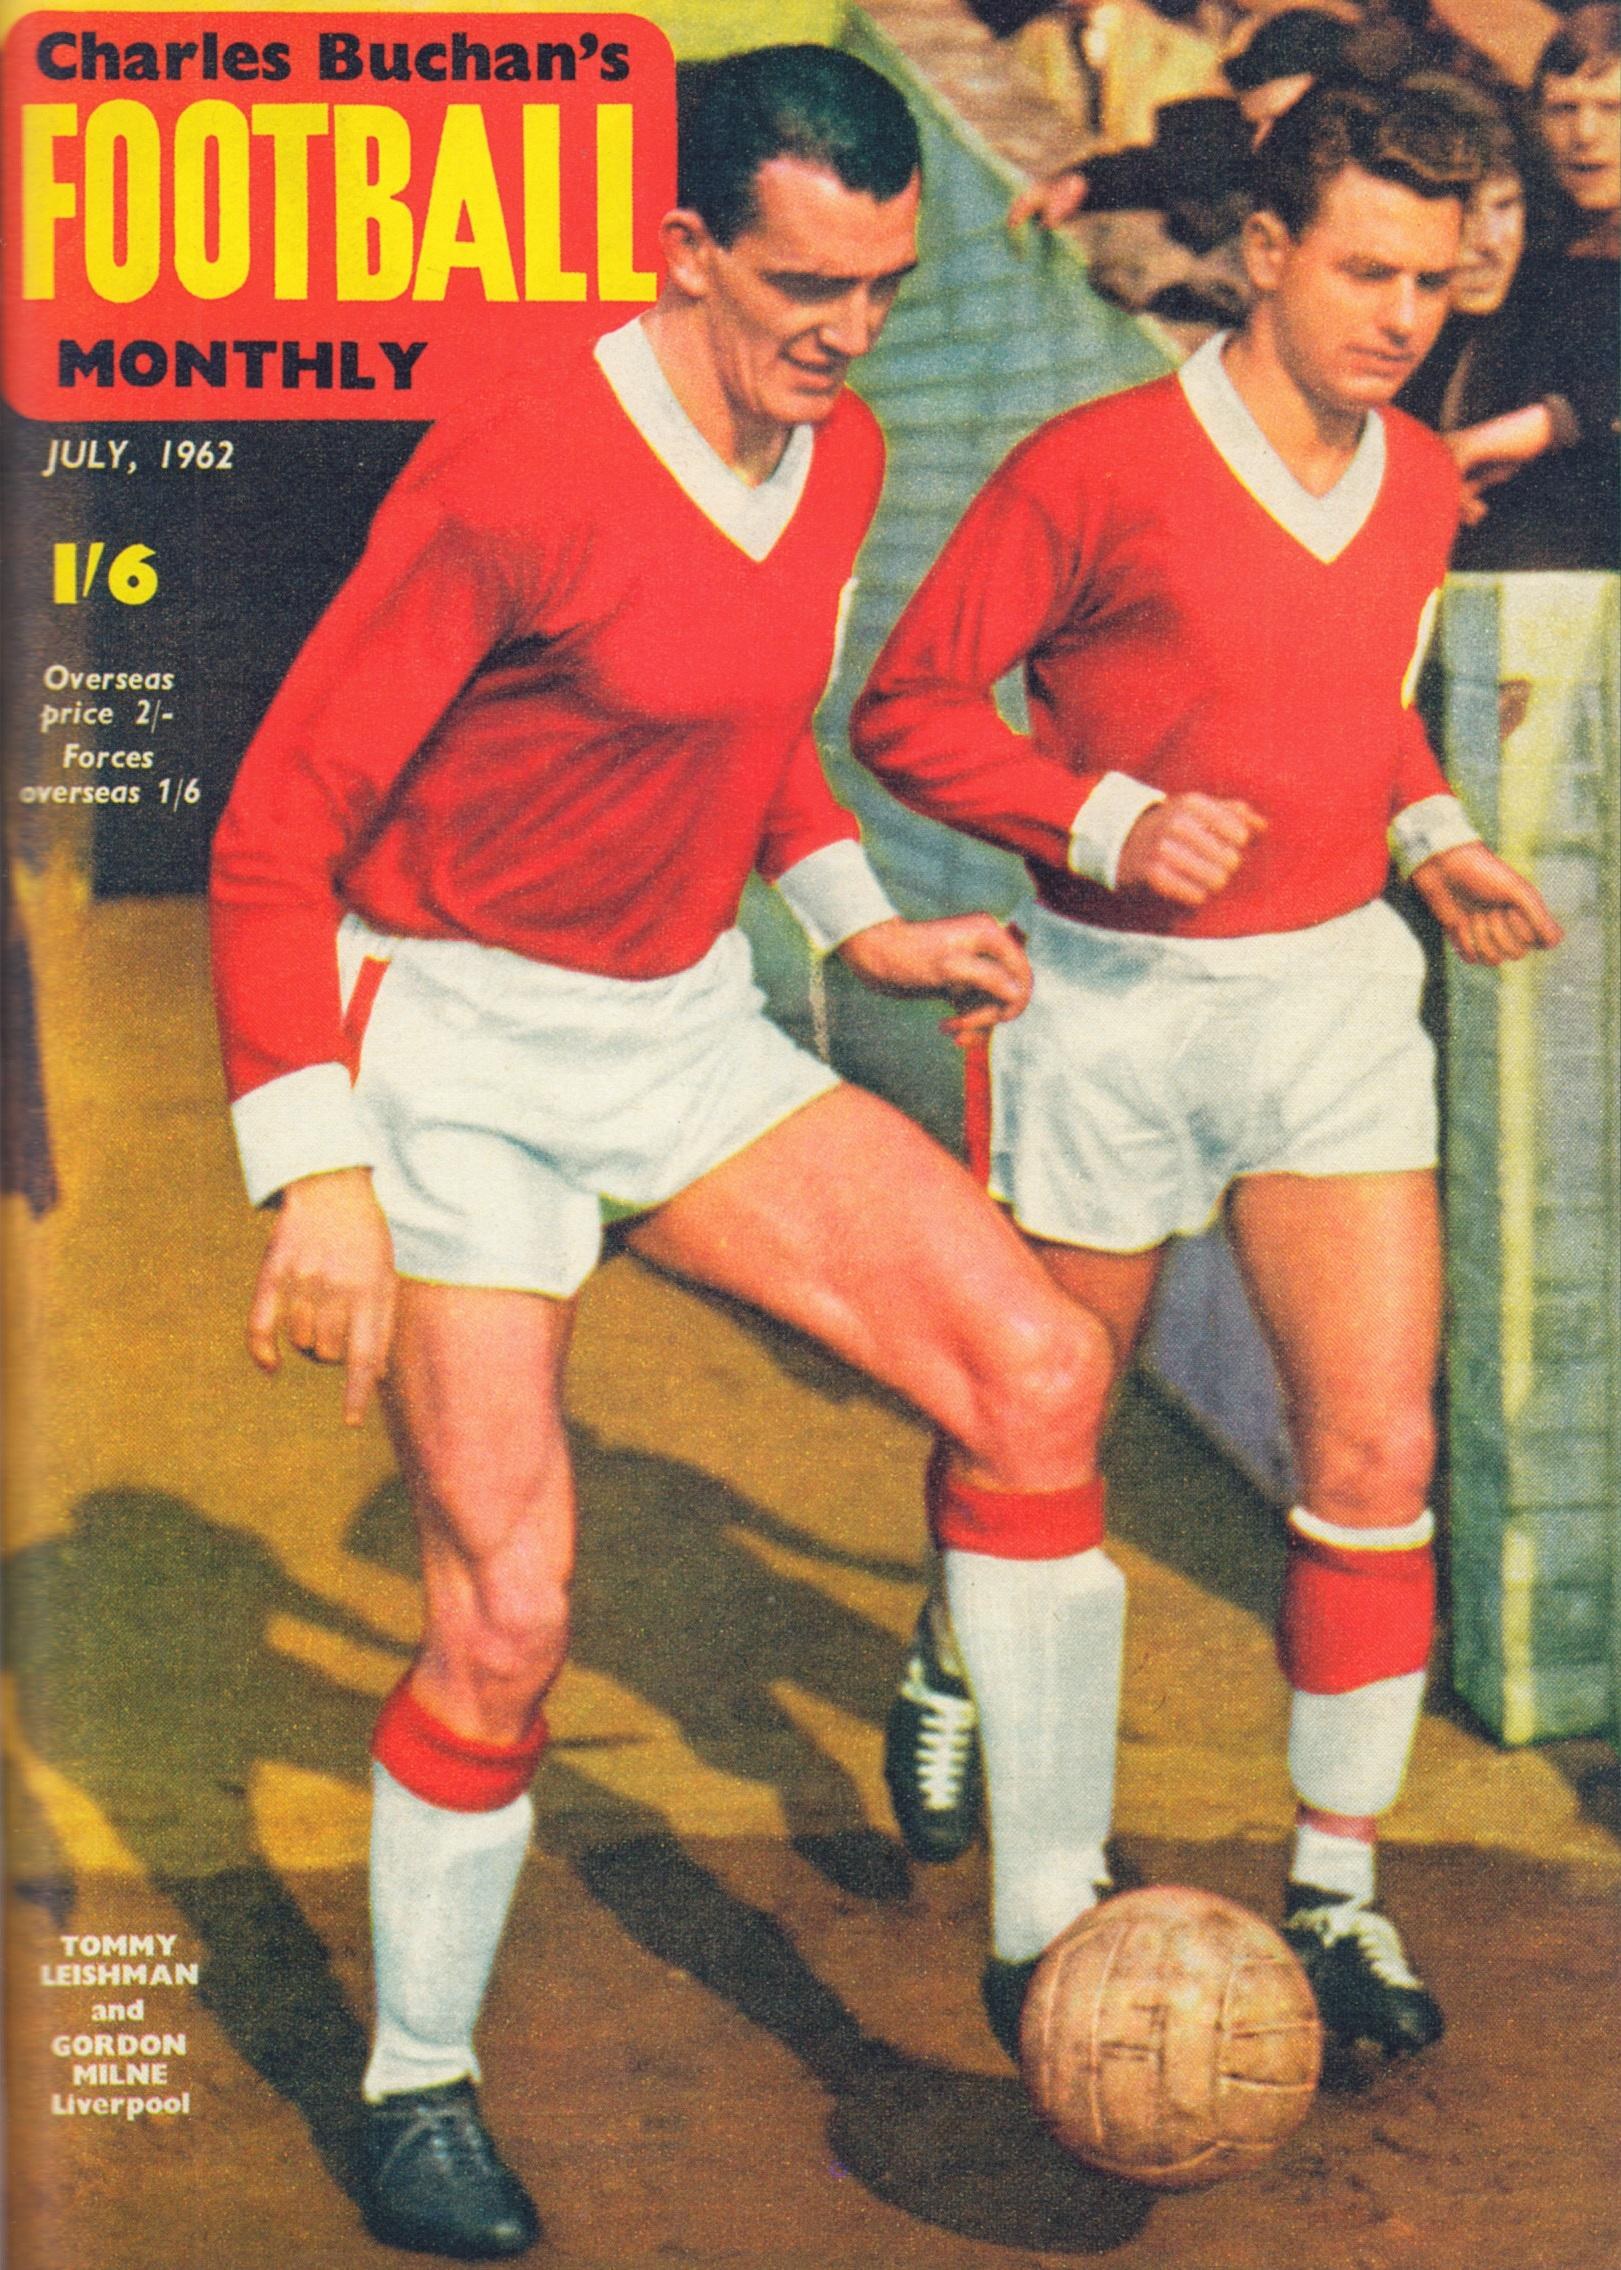 Gordon Milne on the cover of Football Monthly July 1962